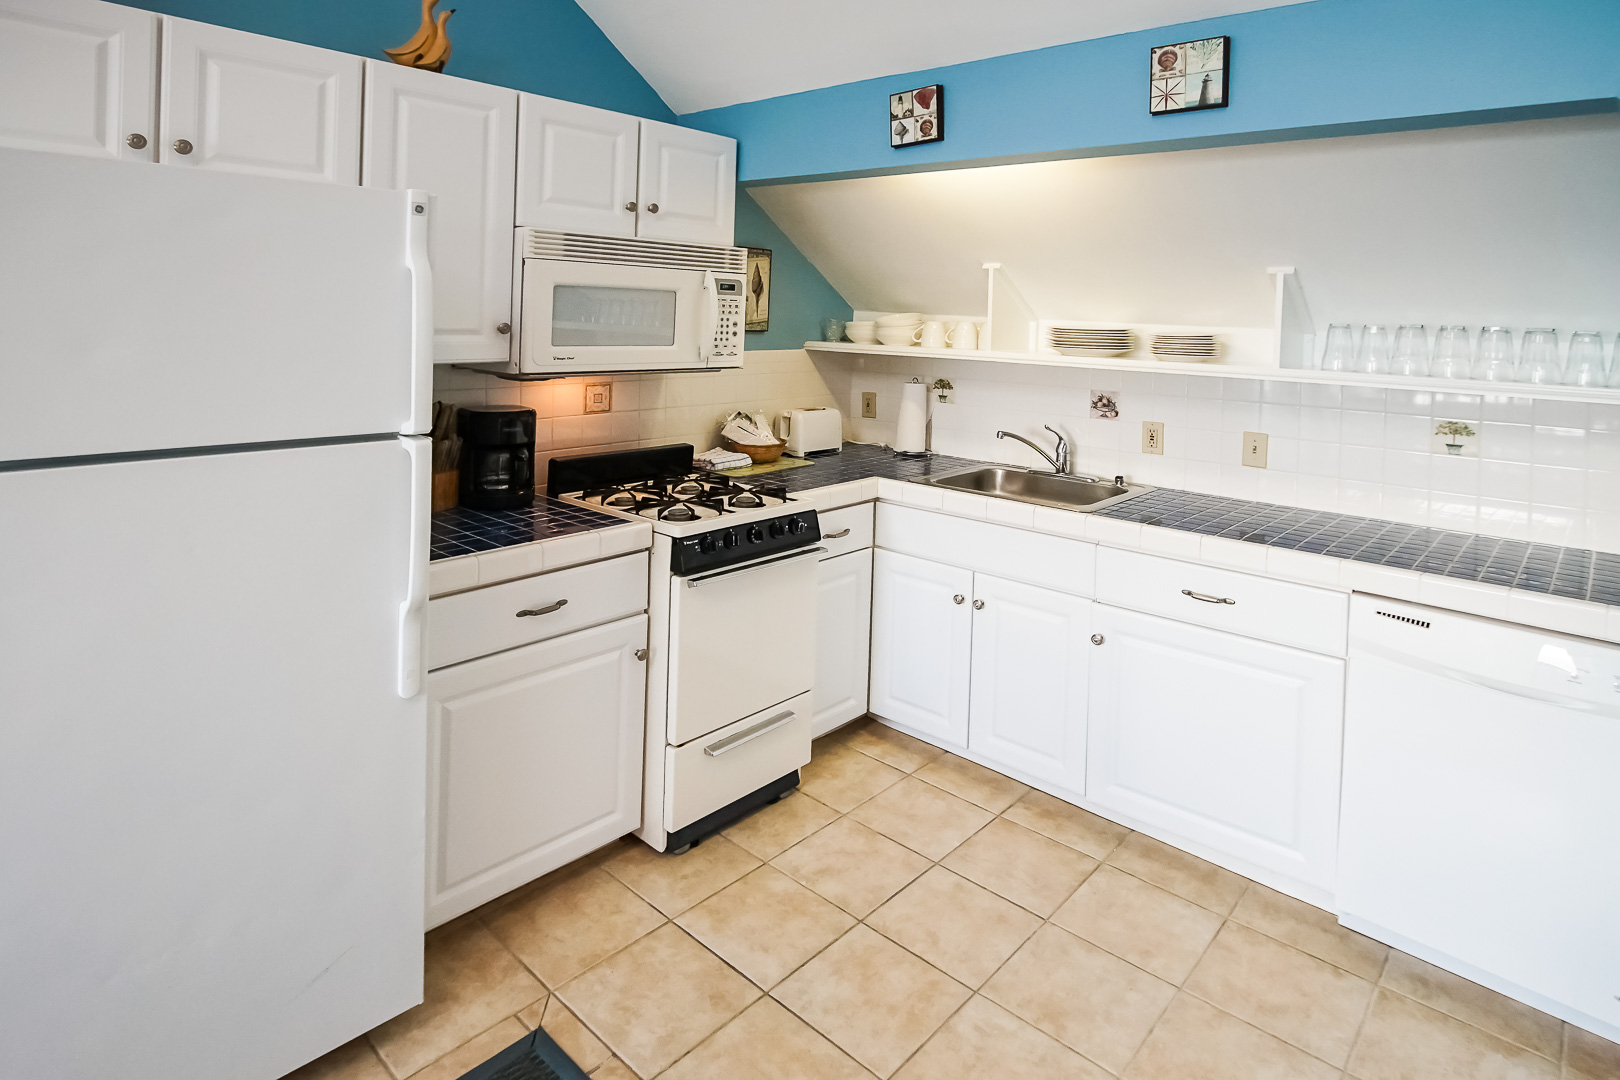 A clean and expansive kitchen at VRI's Seawinds II Resort in Massachusetts.